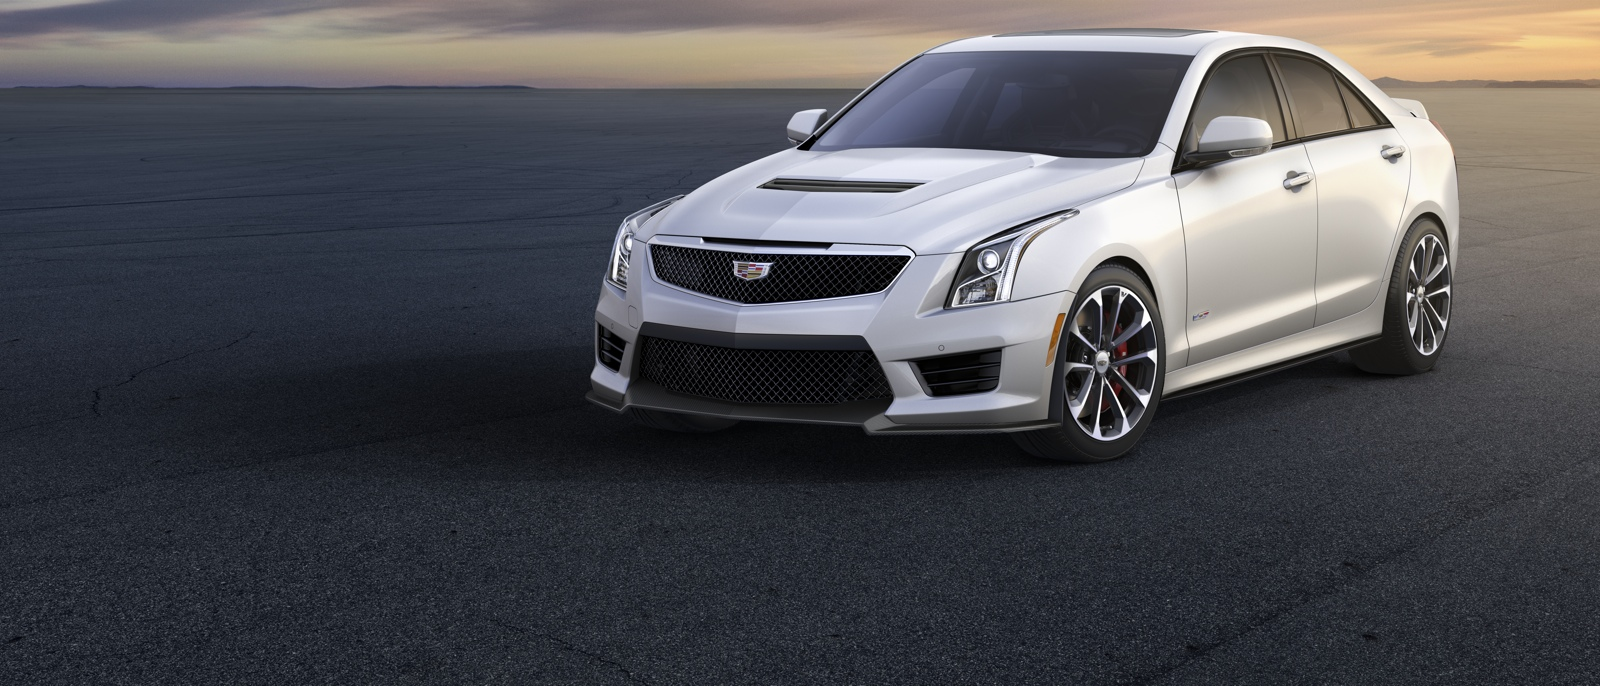 2016 cadillac ats v sedan tinley park naperville. Black Bedroom Furniture Sets. Home Design Ideas